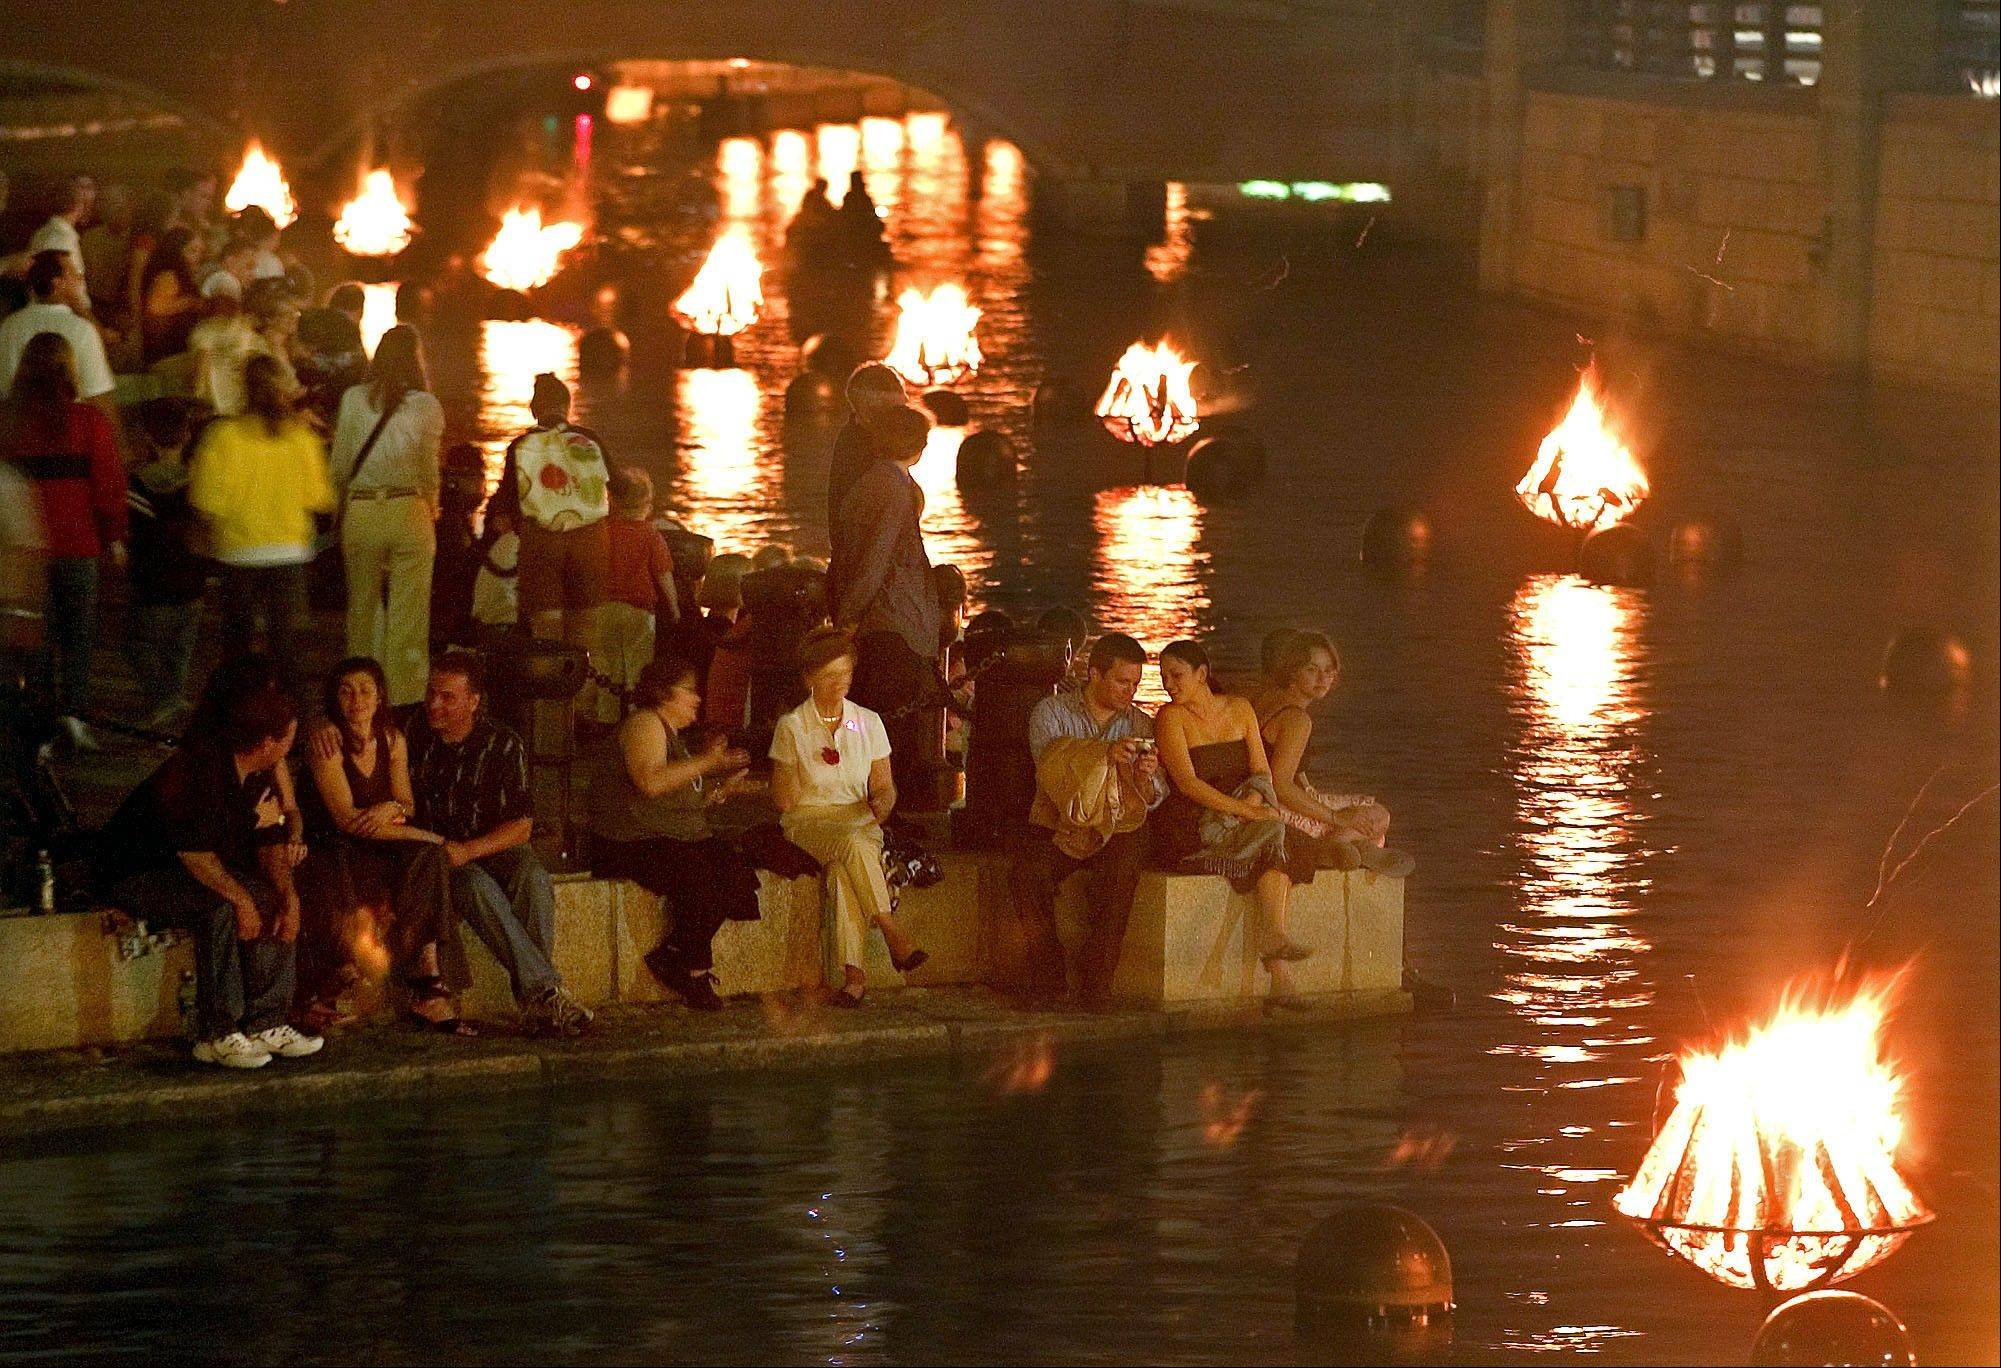 Crowds gather along the riverfront to watch the WaterFire art installation in Providence, R.I. The work by Barnaby Evans centers on a series of 100 bonfires that blaze just above the surface of the three rivers that pass through the middle of downtown.